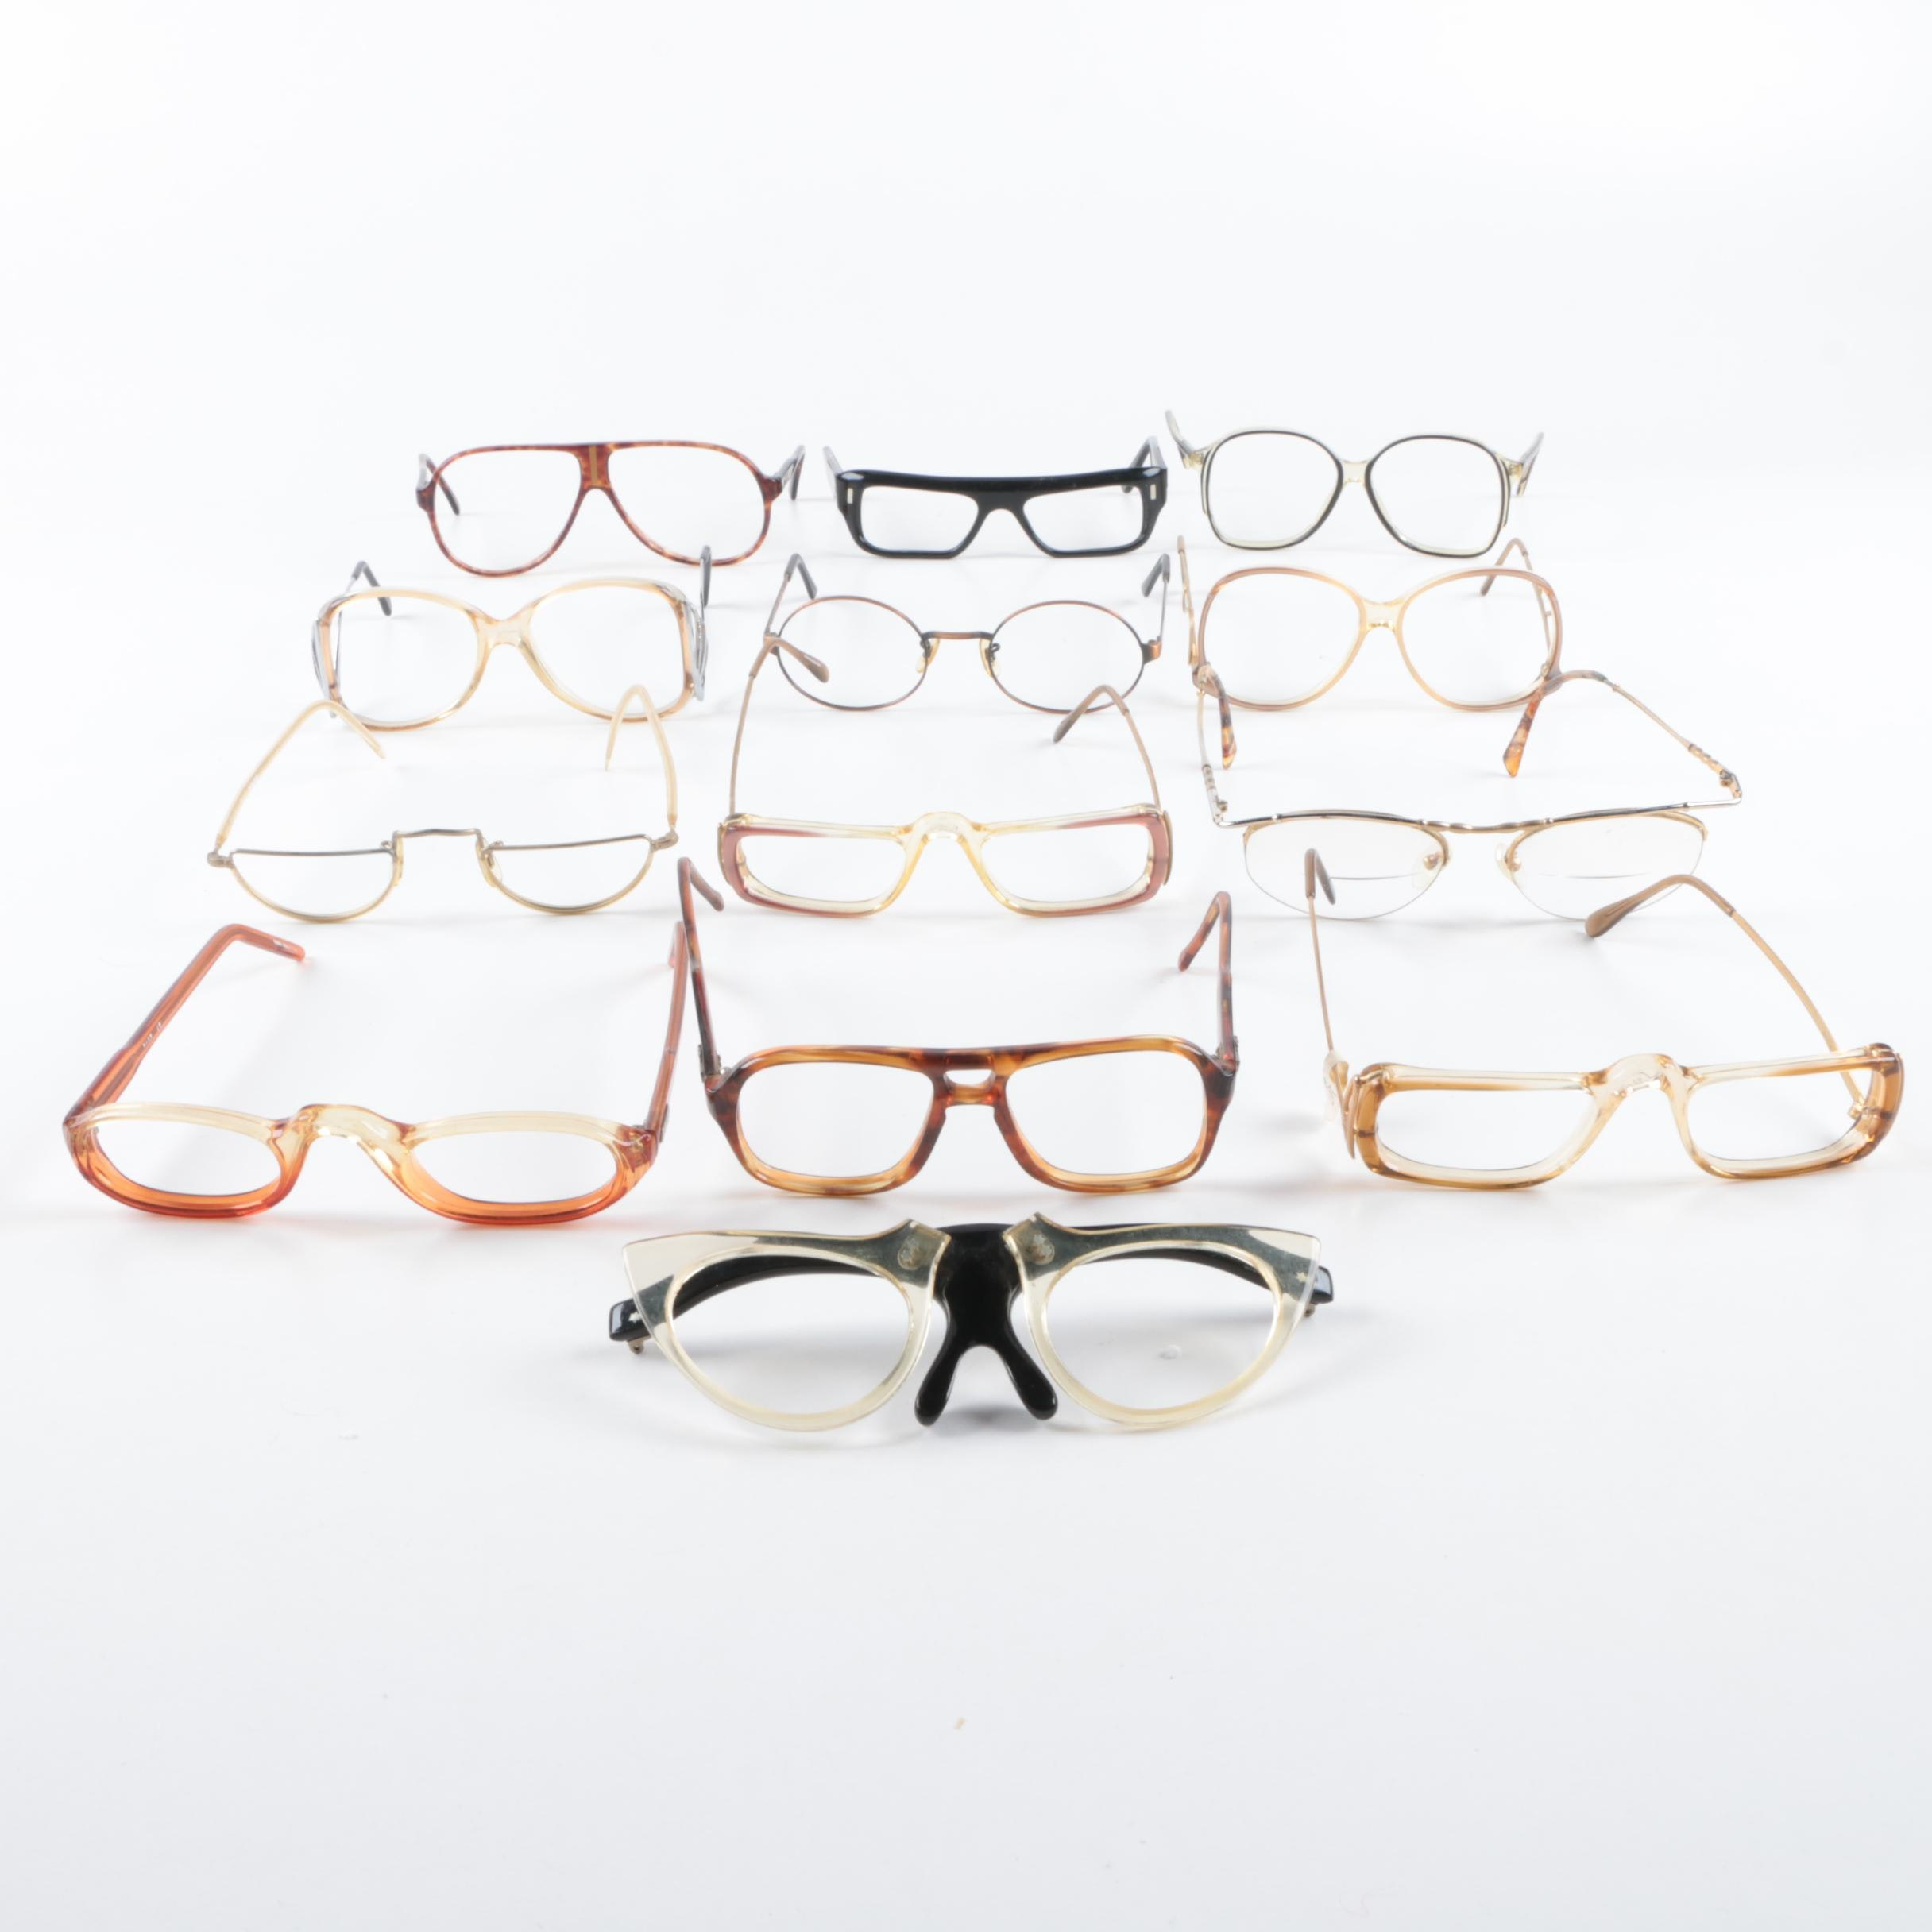 Vintage Eyeglass Frames Including Liberty and Le Star